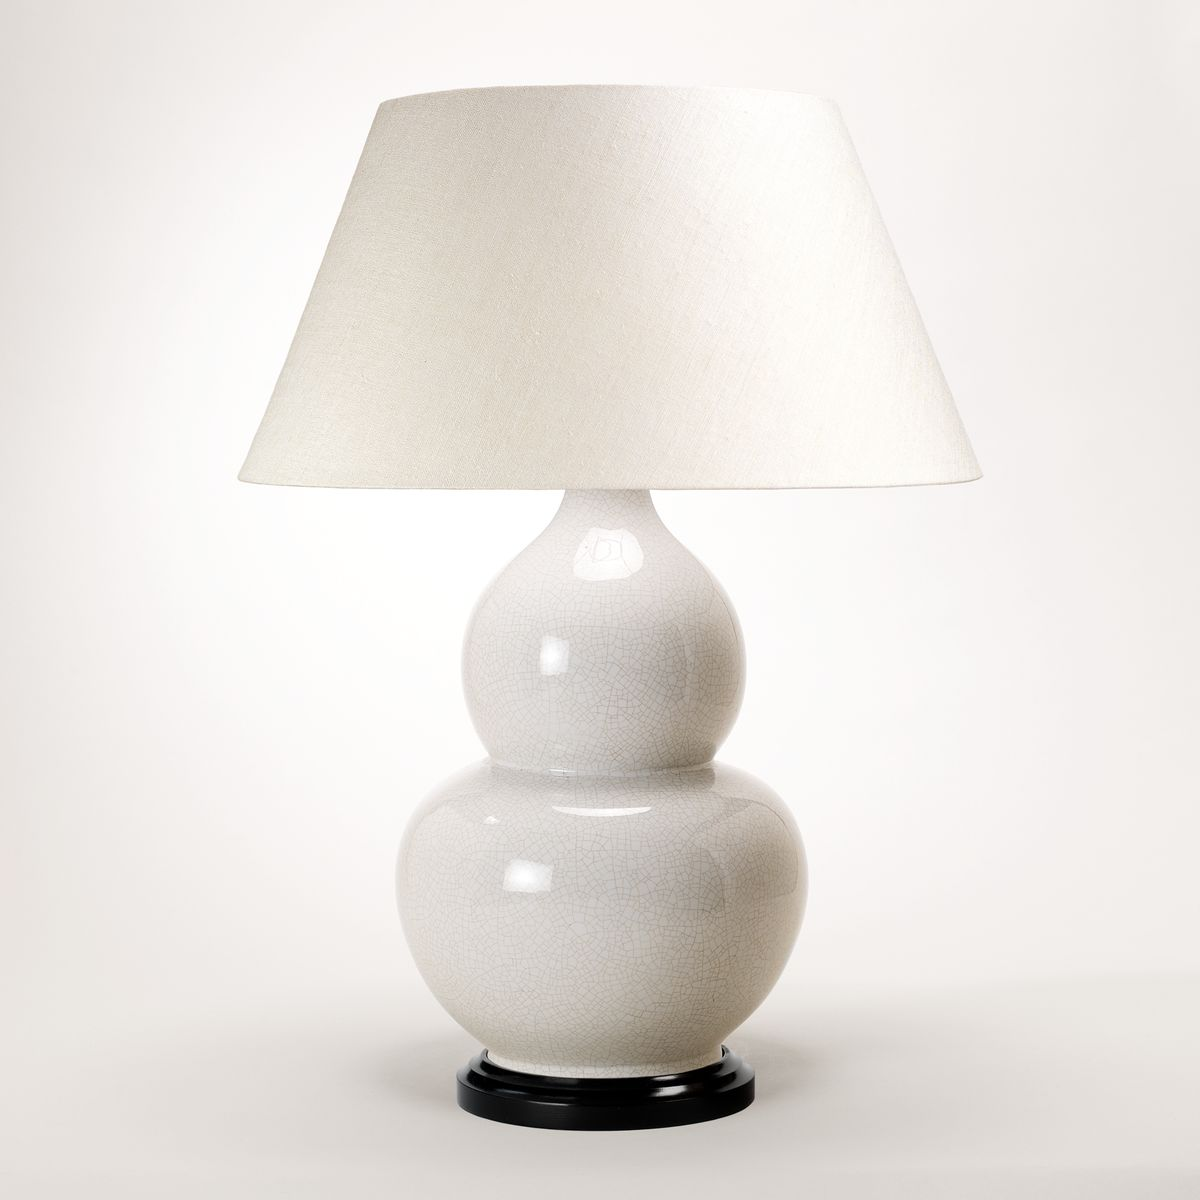 Gourd Vase Table Lamp - White | Nicholas Engert Interiors